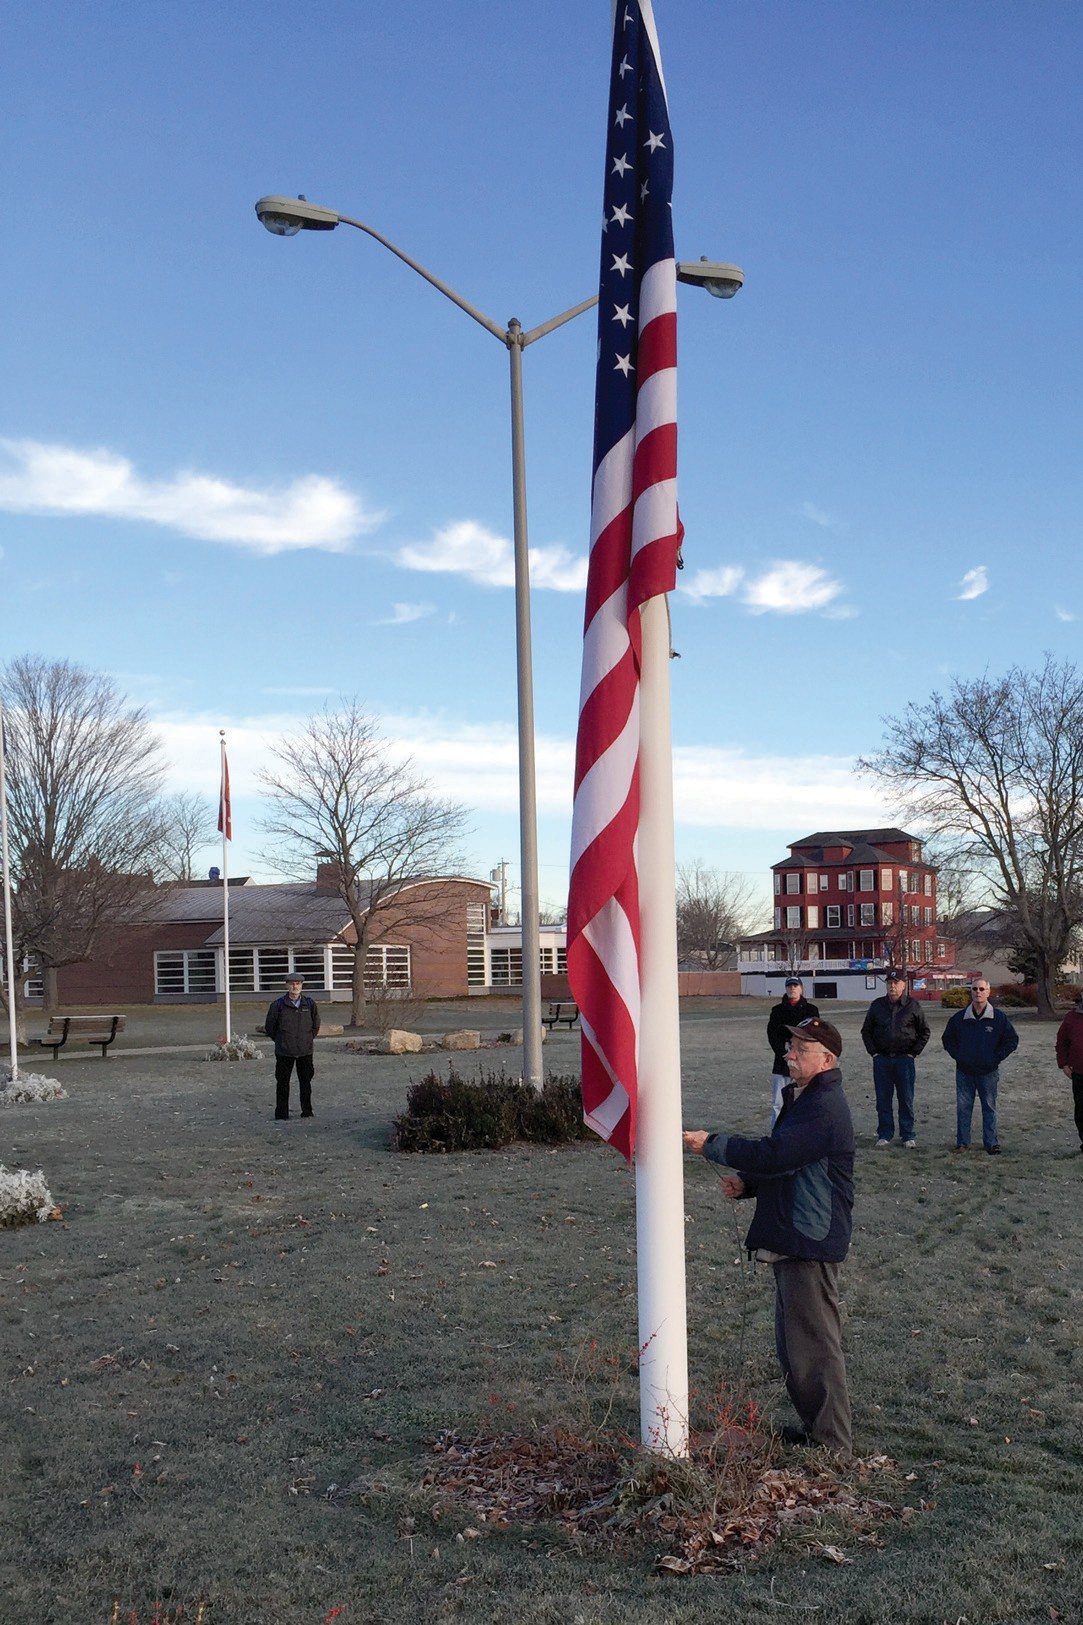 Vietnam War veteran and member of multiple veteran's organization Rich Litwin raises the American Flag Monday morning at a Pearl Harbor ceremony at Veterans Memorial Park in Old Orchard Beach.